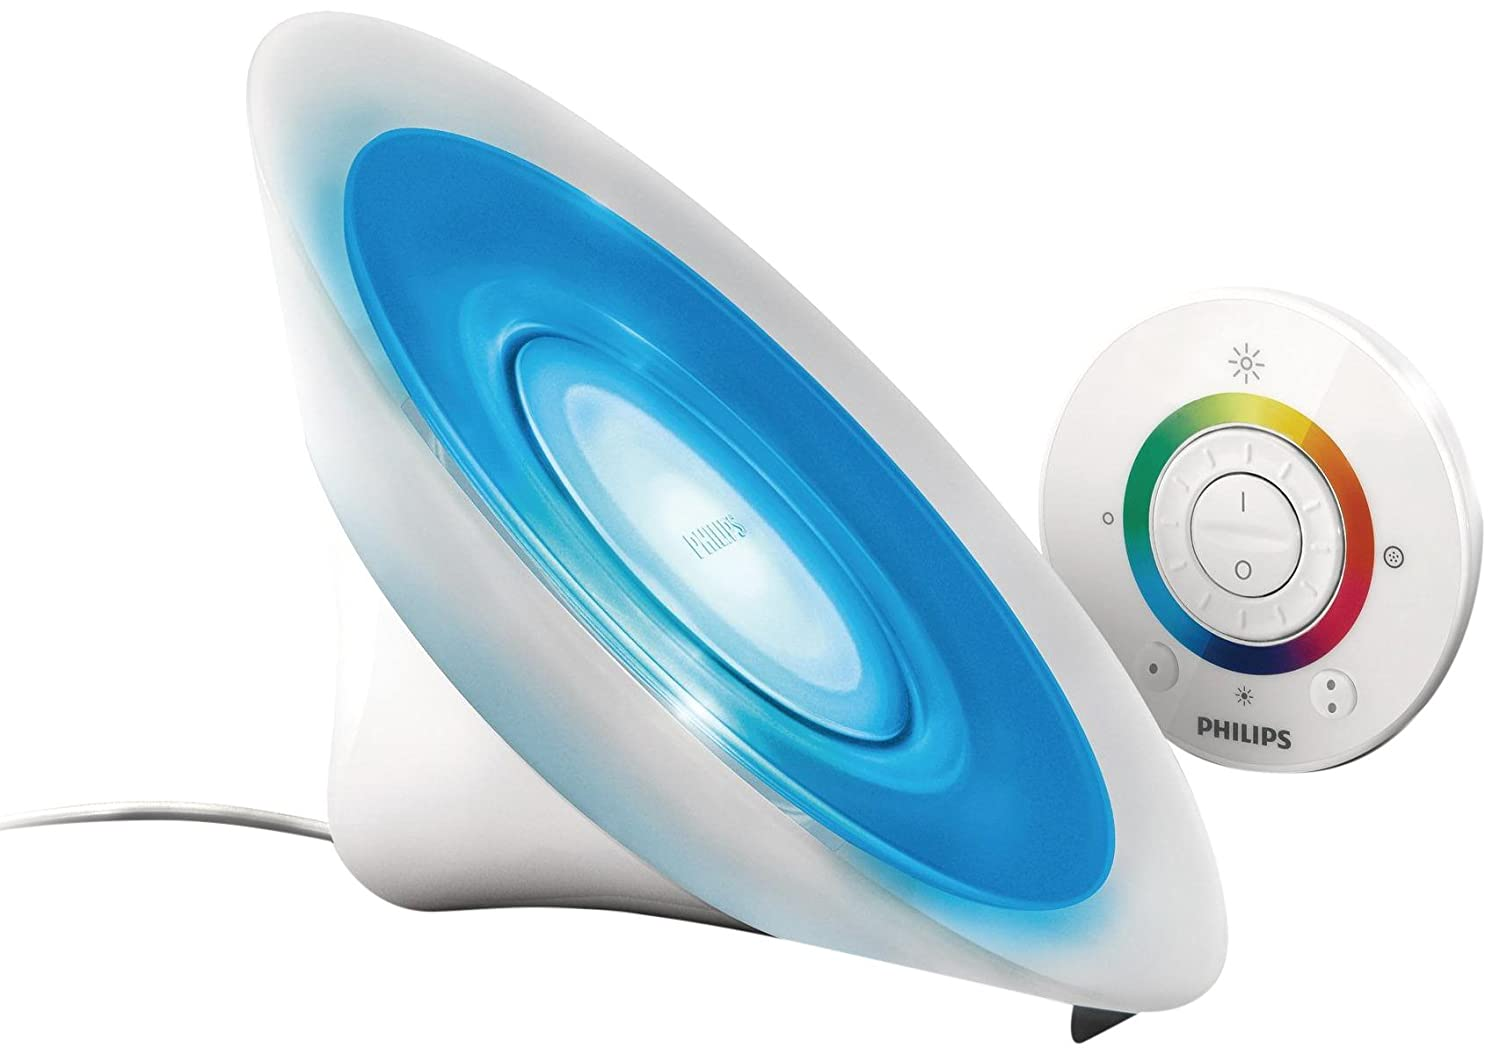 Led Lampen Philips : Philips living colors aura energiesparende led technologie mit